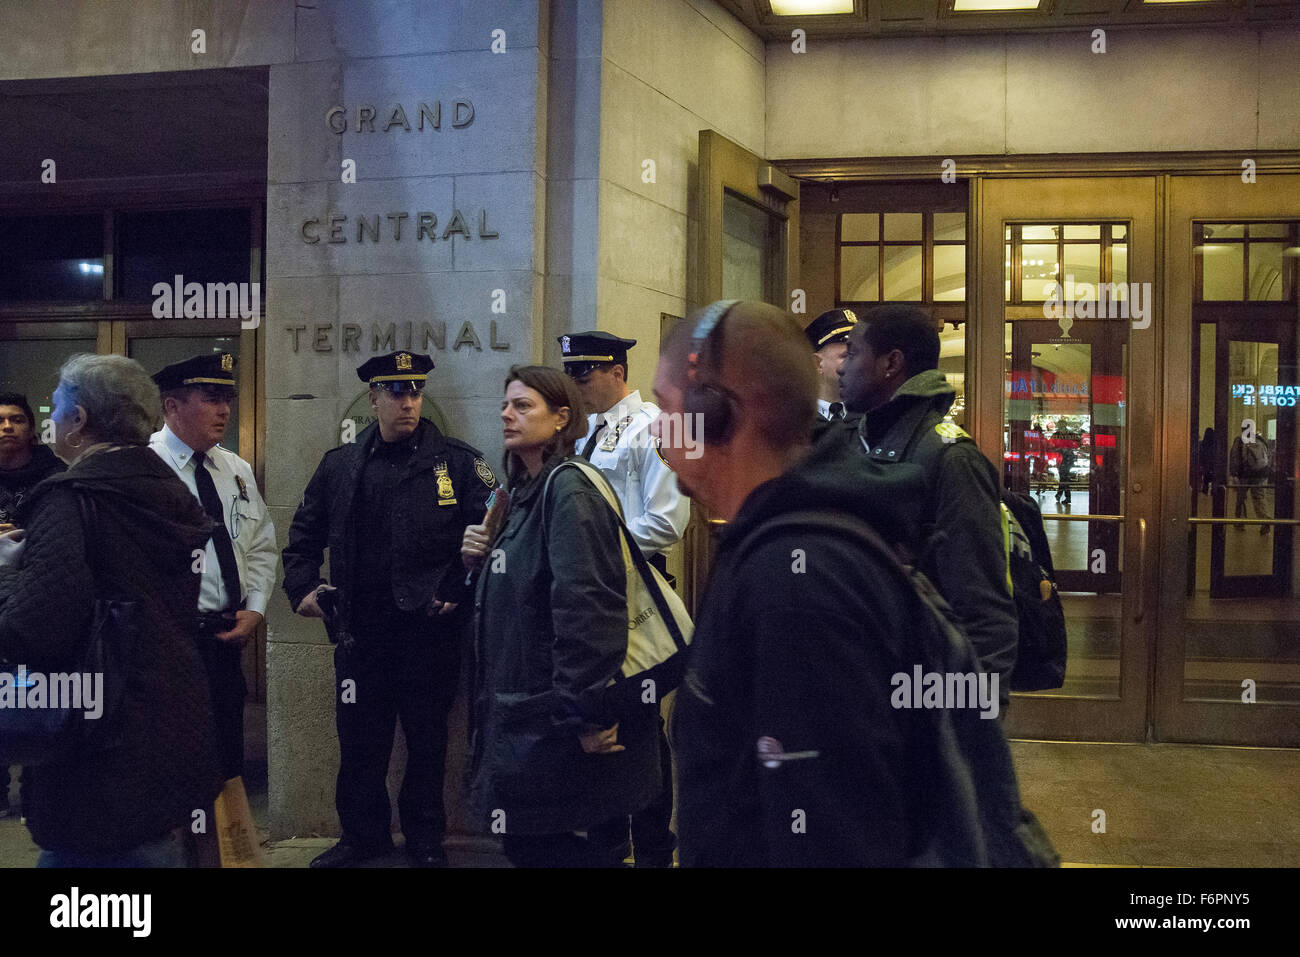 New York, United States. 18th Nov, 2015. A trio of NYPD officers stand near the entrance to Grand Central Terminal, Stock Photo